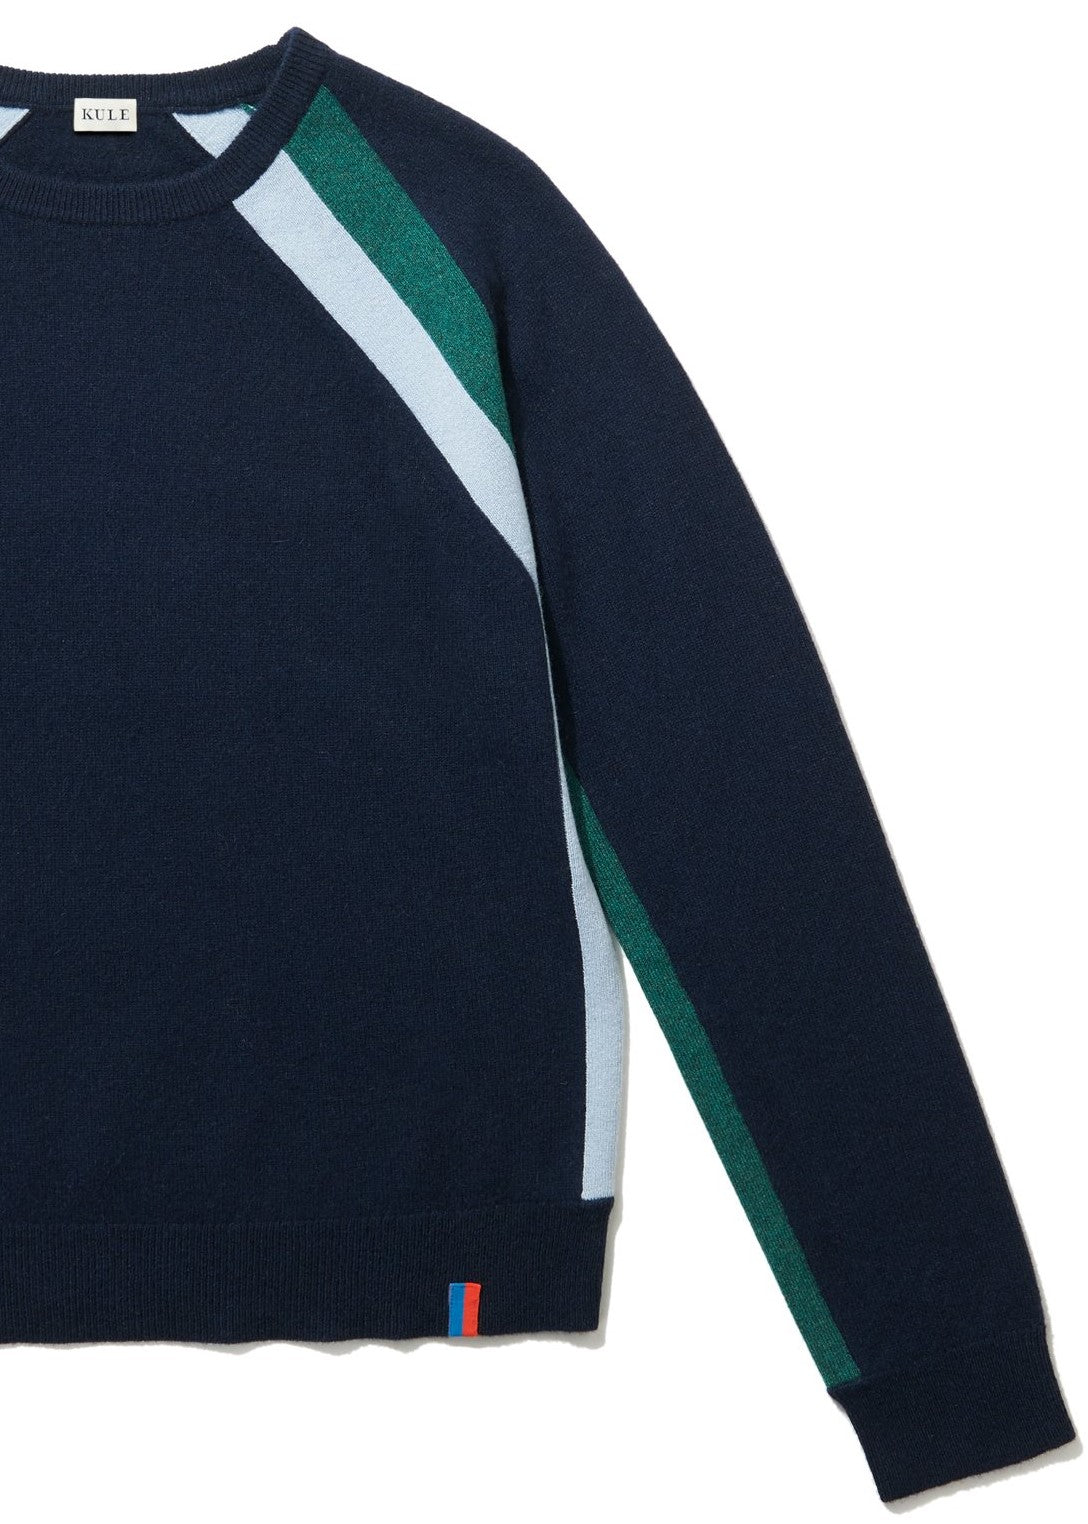 Kule Minty sweater in navy